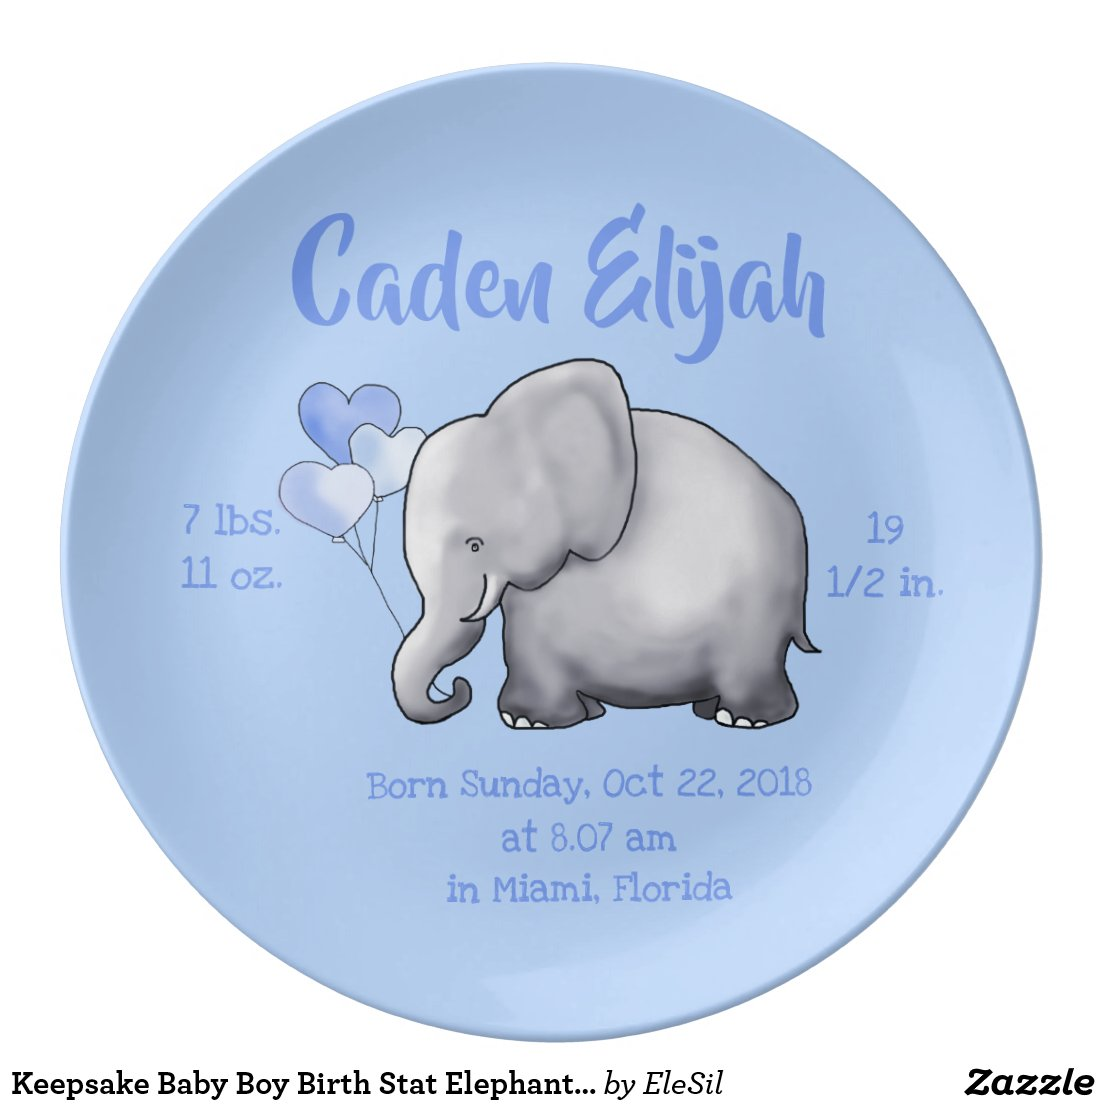 Keepsake Baby Boy Birth Stat Elephant Nursery Plate